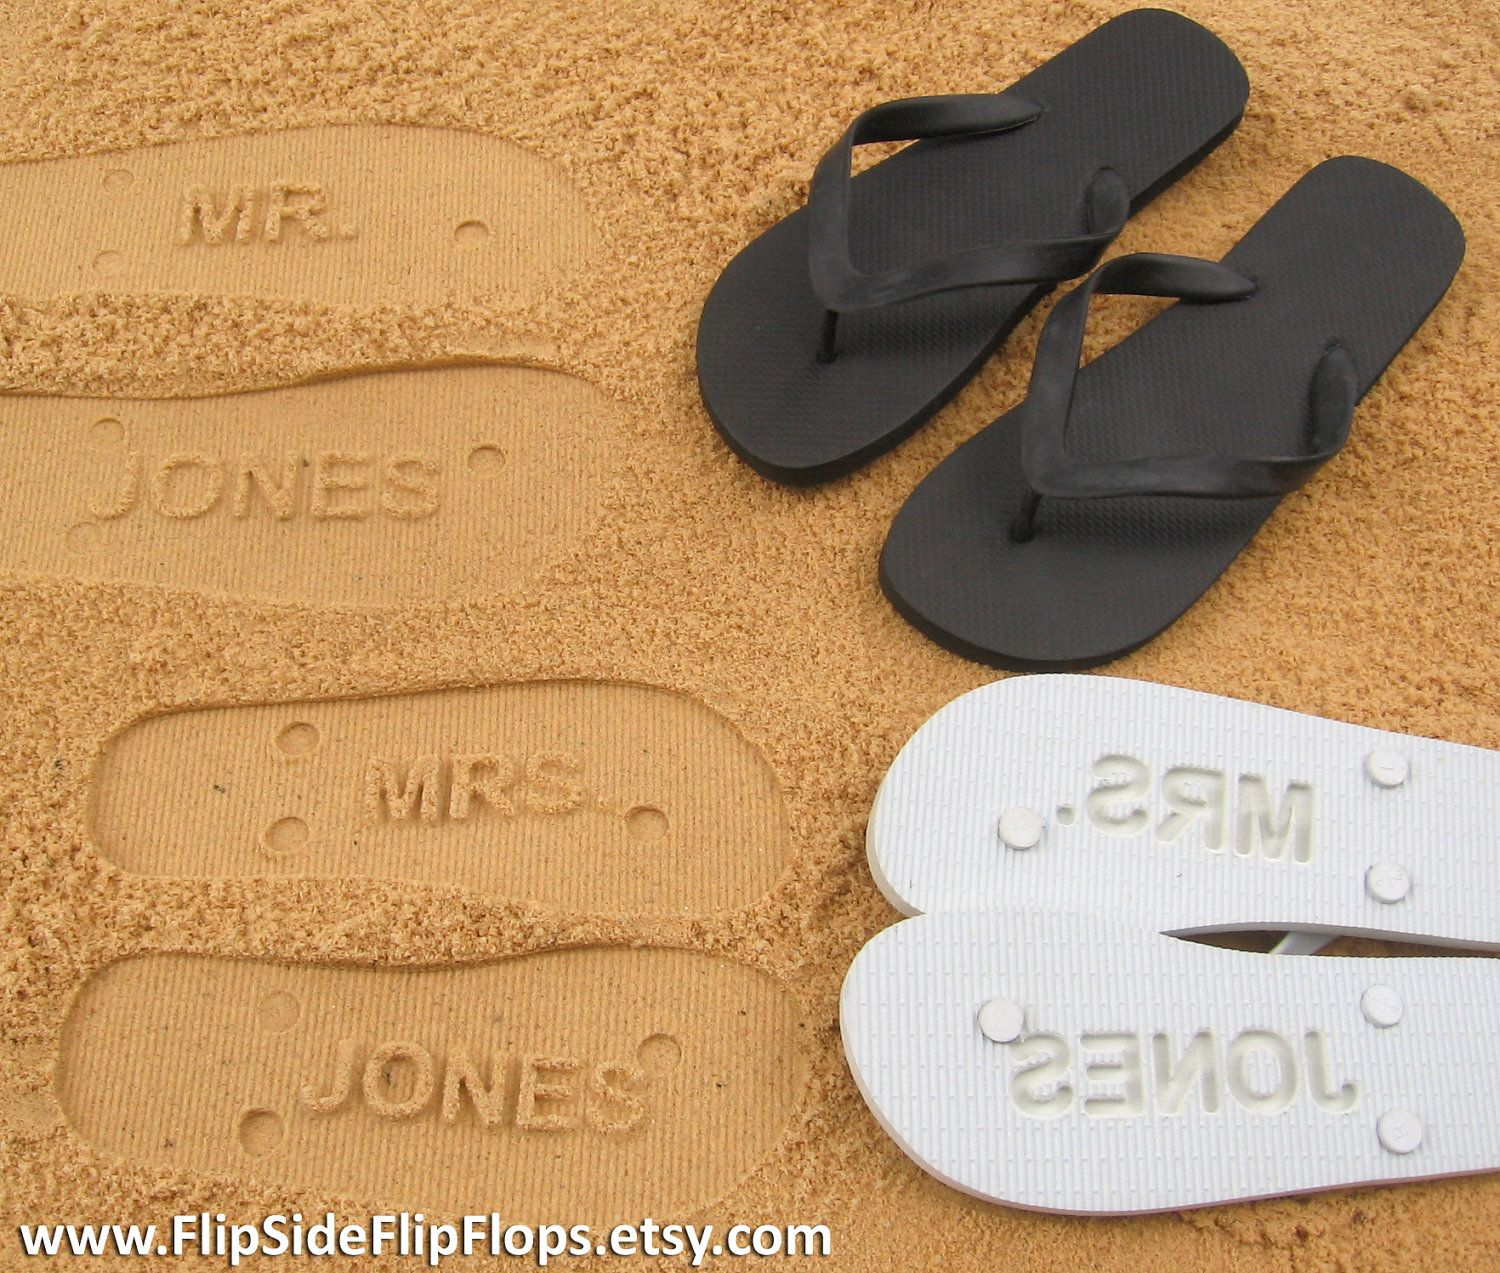 f85e66764 Custom Sand Imprint Wedding and Bridal Flip Flops. Personalize With Your  Design. No Minimum Order Quantity..  19.95